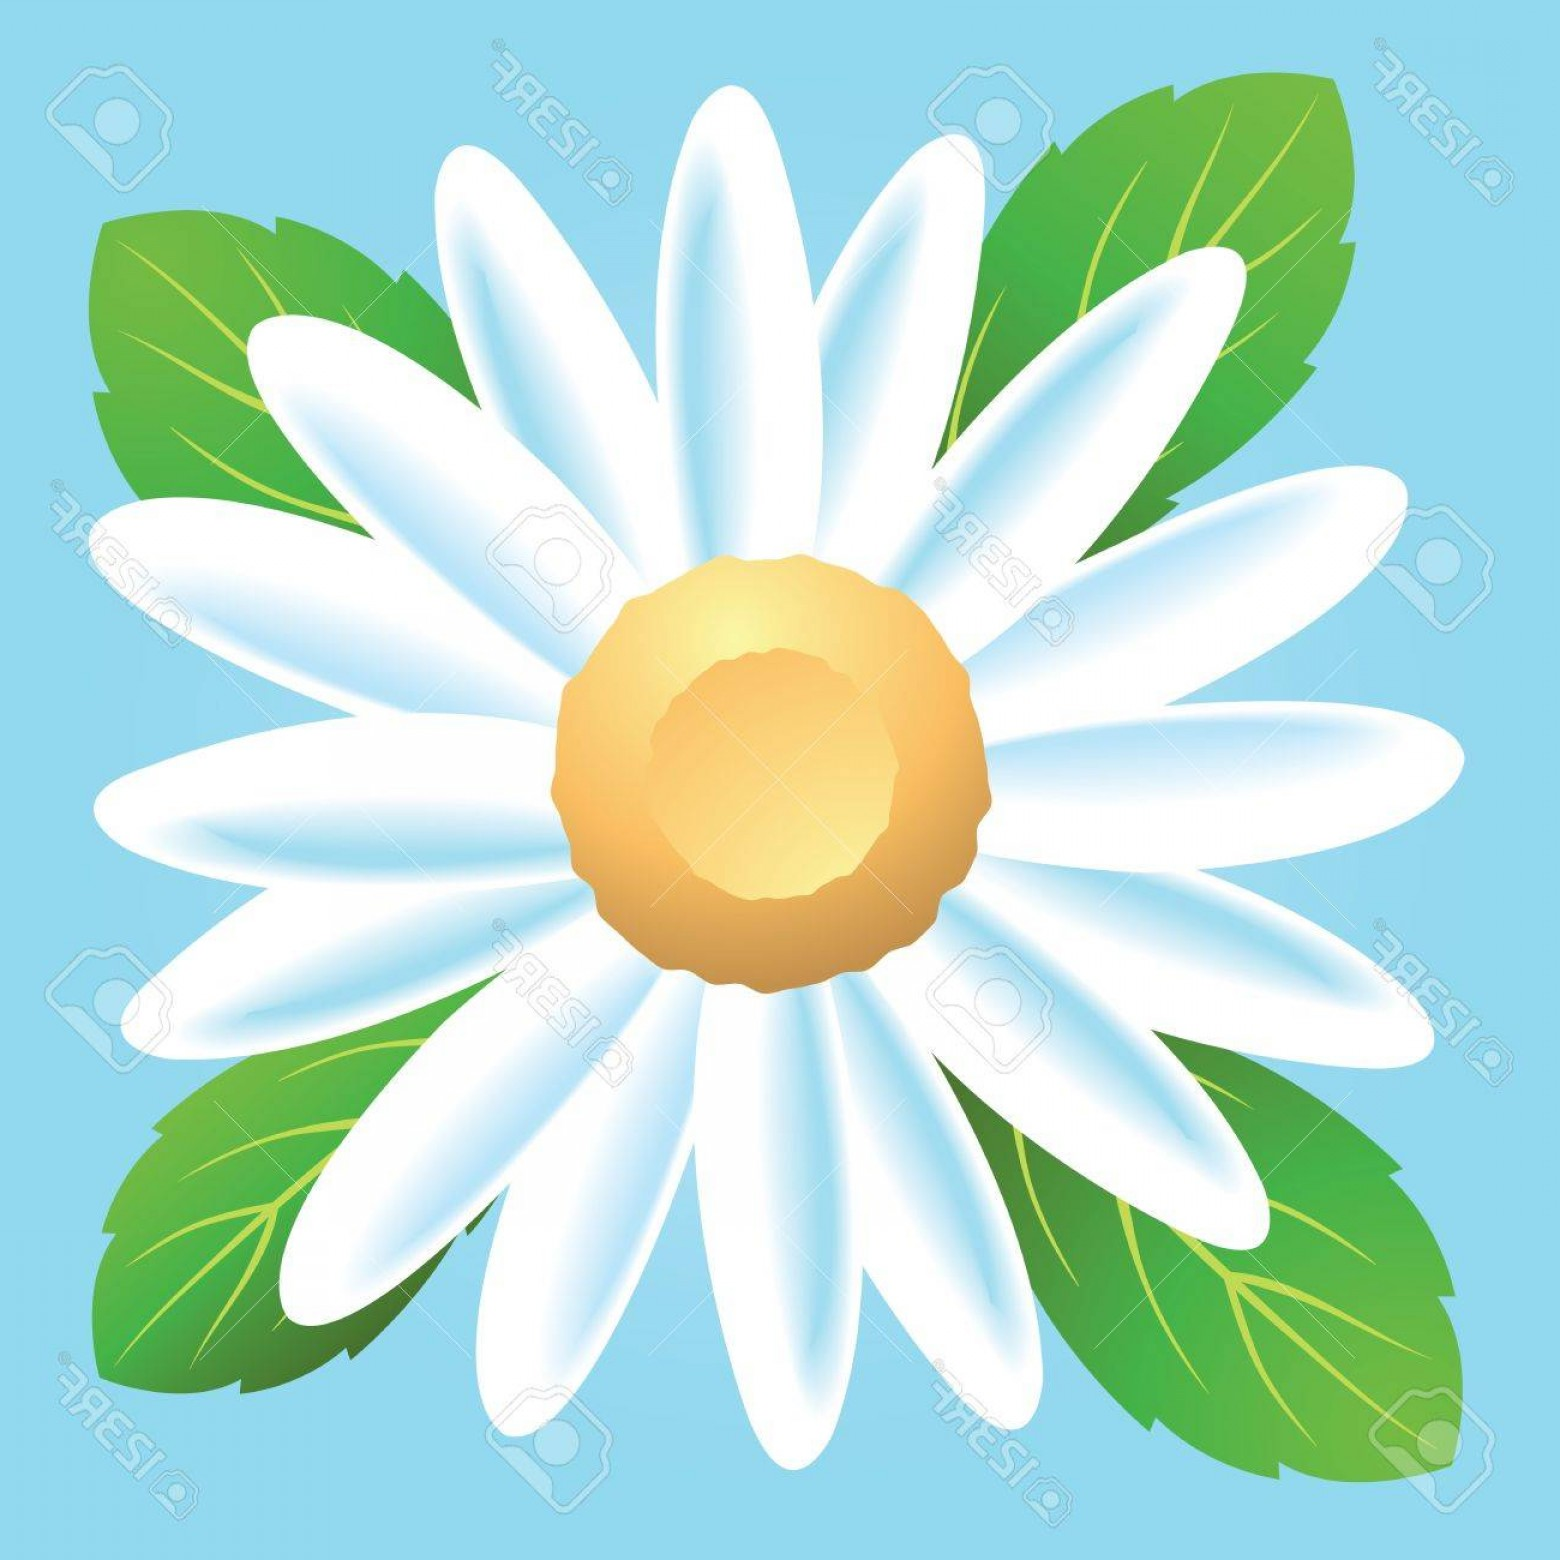 Simple Vector Daisy: Photoa Simple Daisy Flower Icon